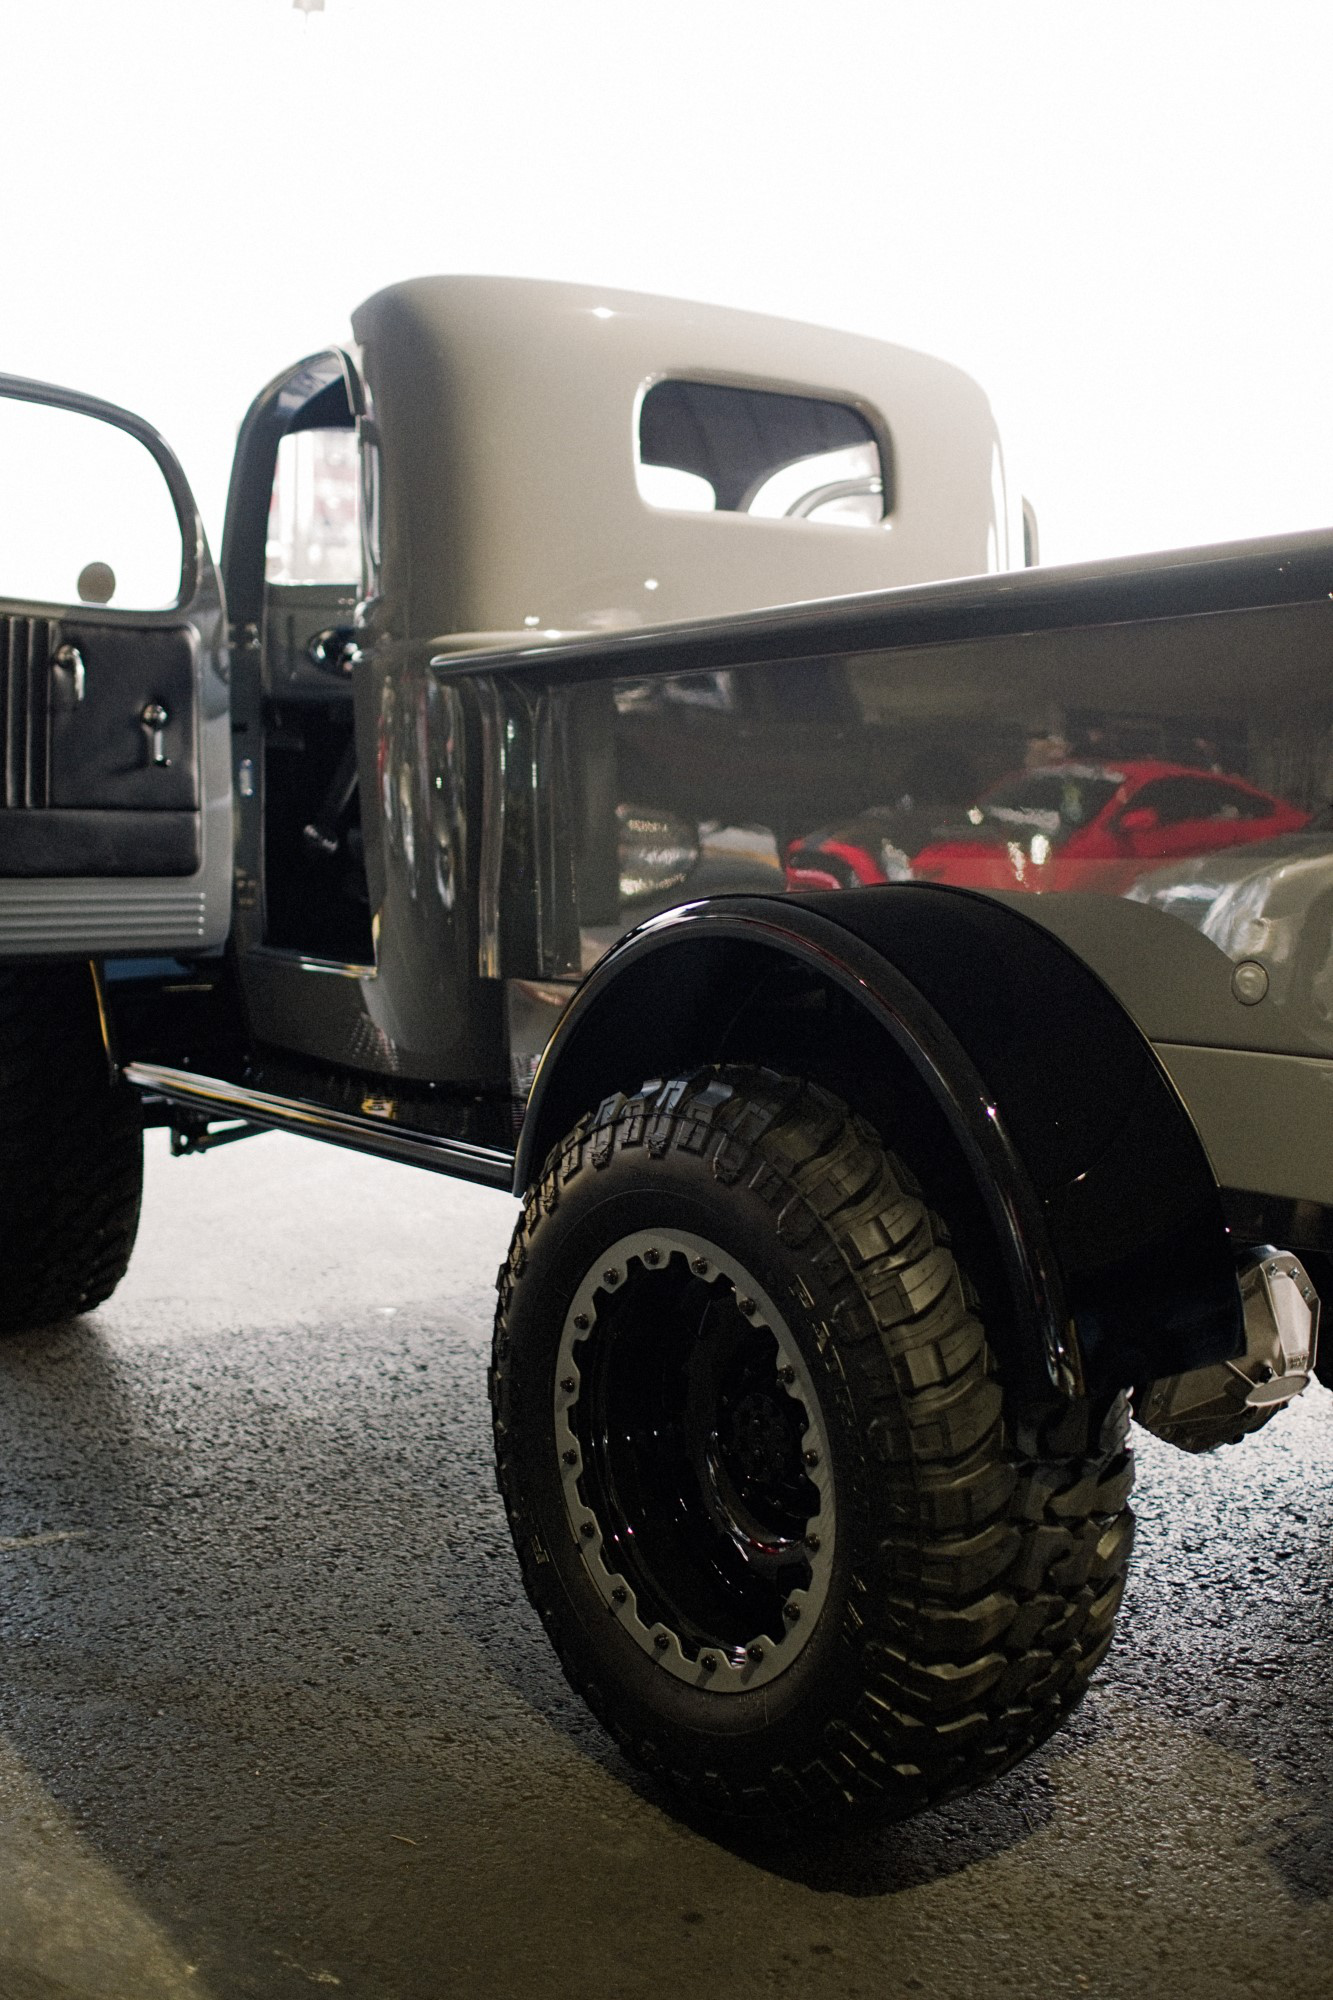 1941 Military Power Wagon side and tire